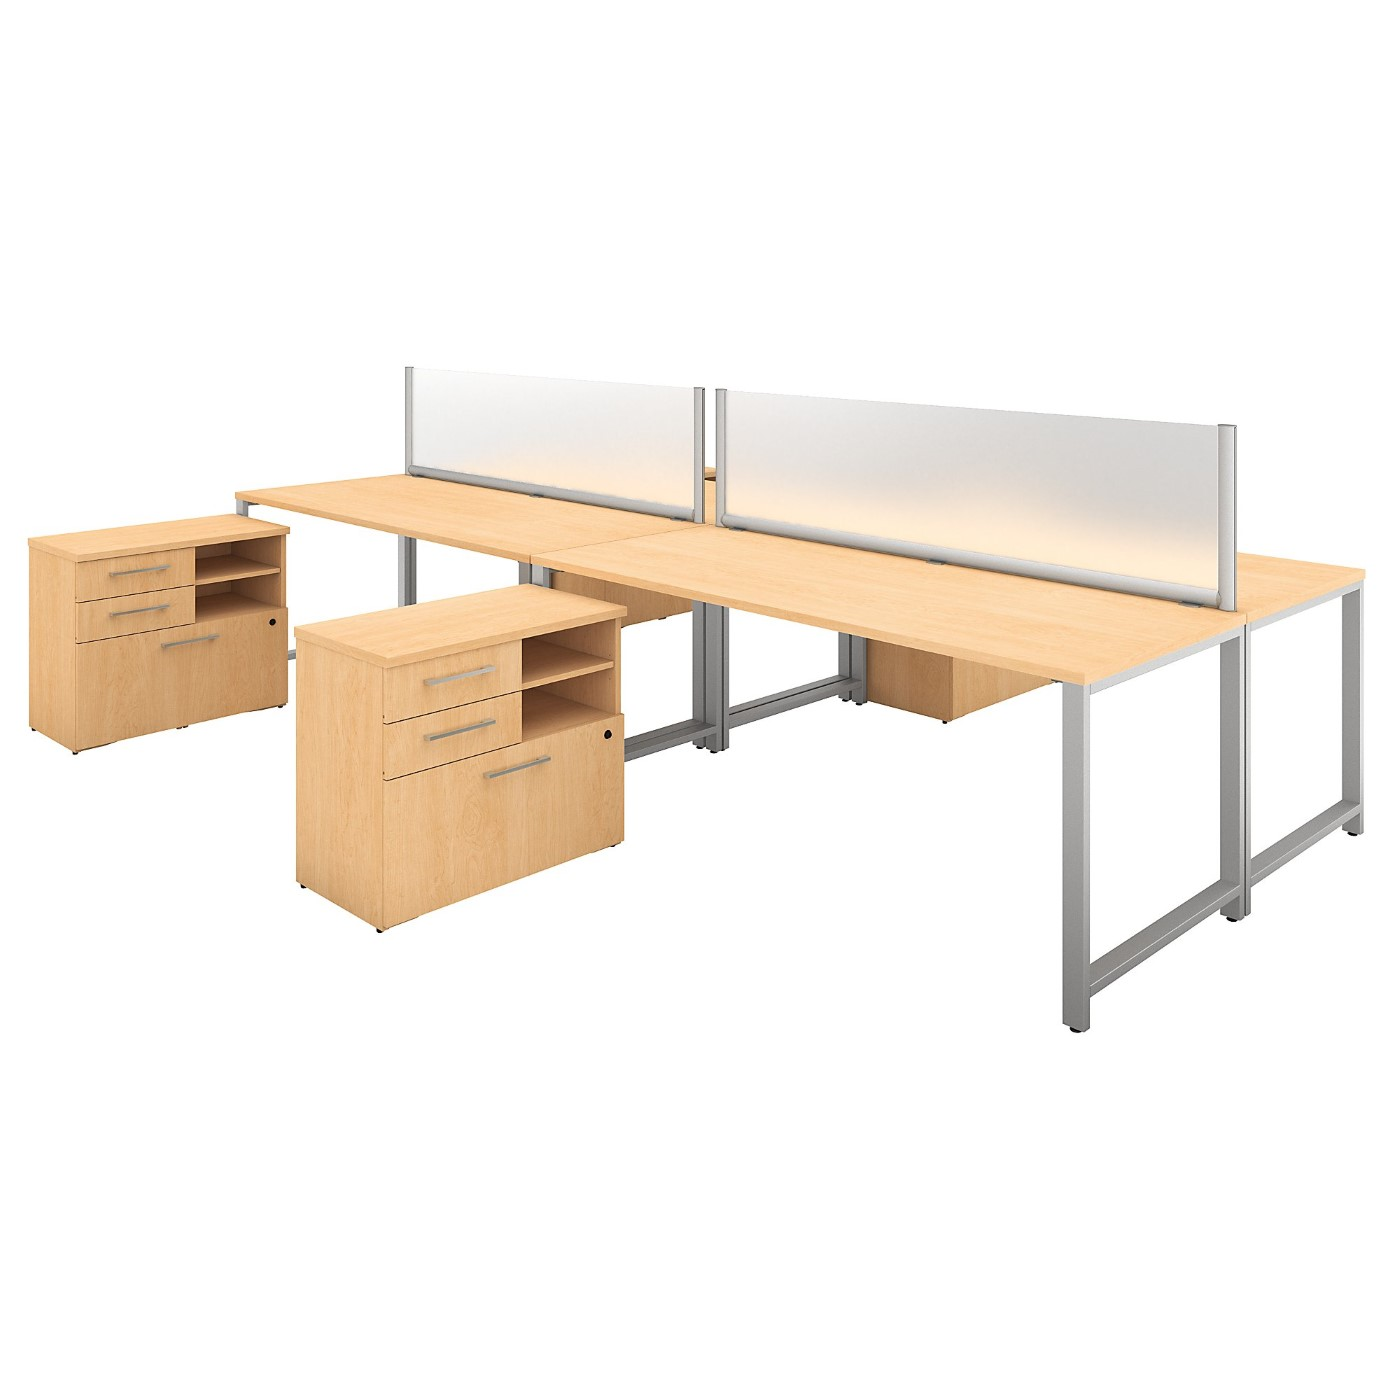 BUSH BUSINESS FURNITURE 400 SERIES 72W X 30D 4 PERSON WORKSTATION WITH TABLE DESKS AND STORAGE. FREE SHIPPING